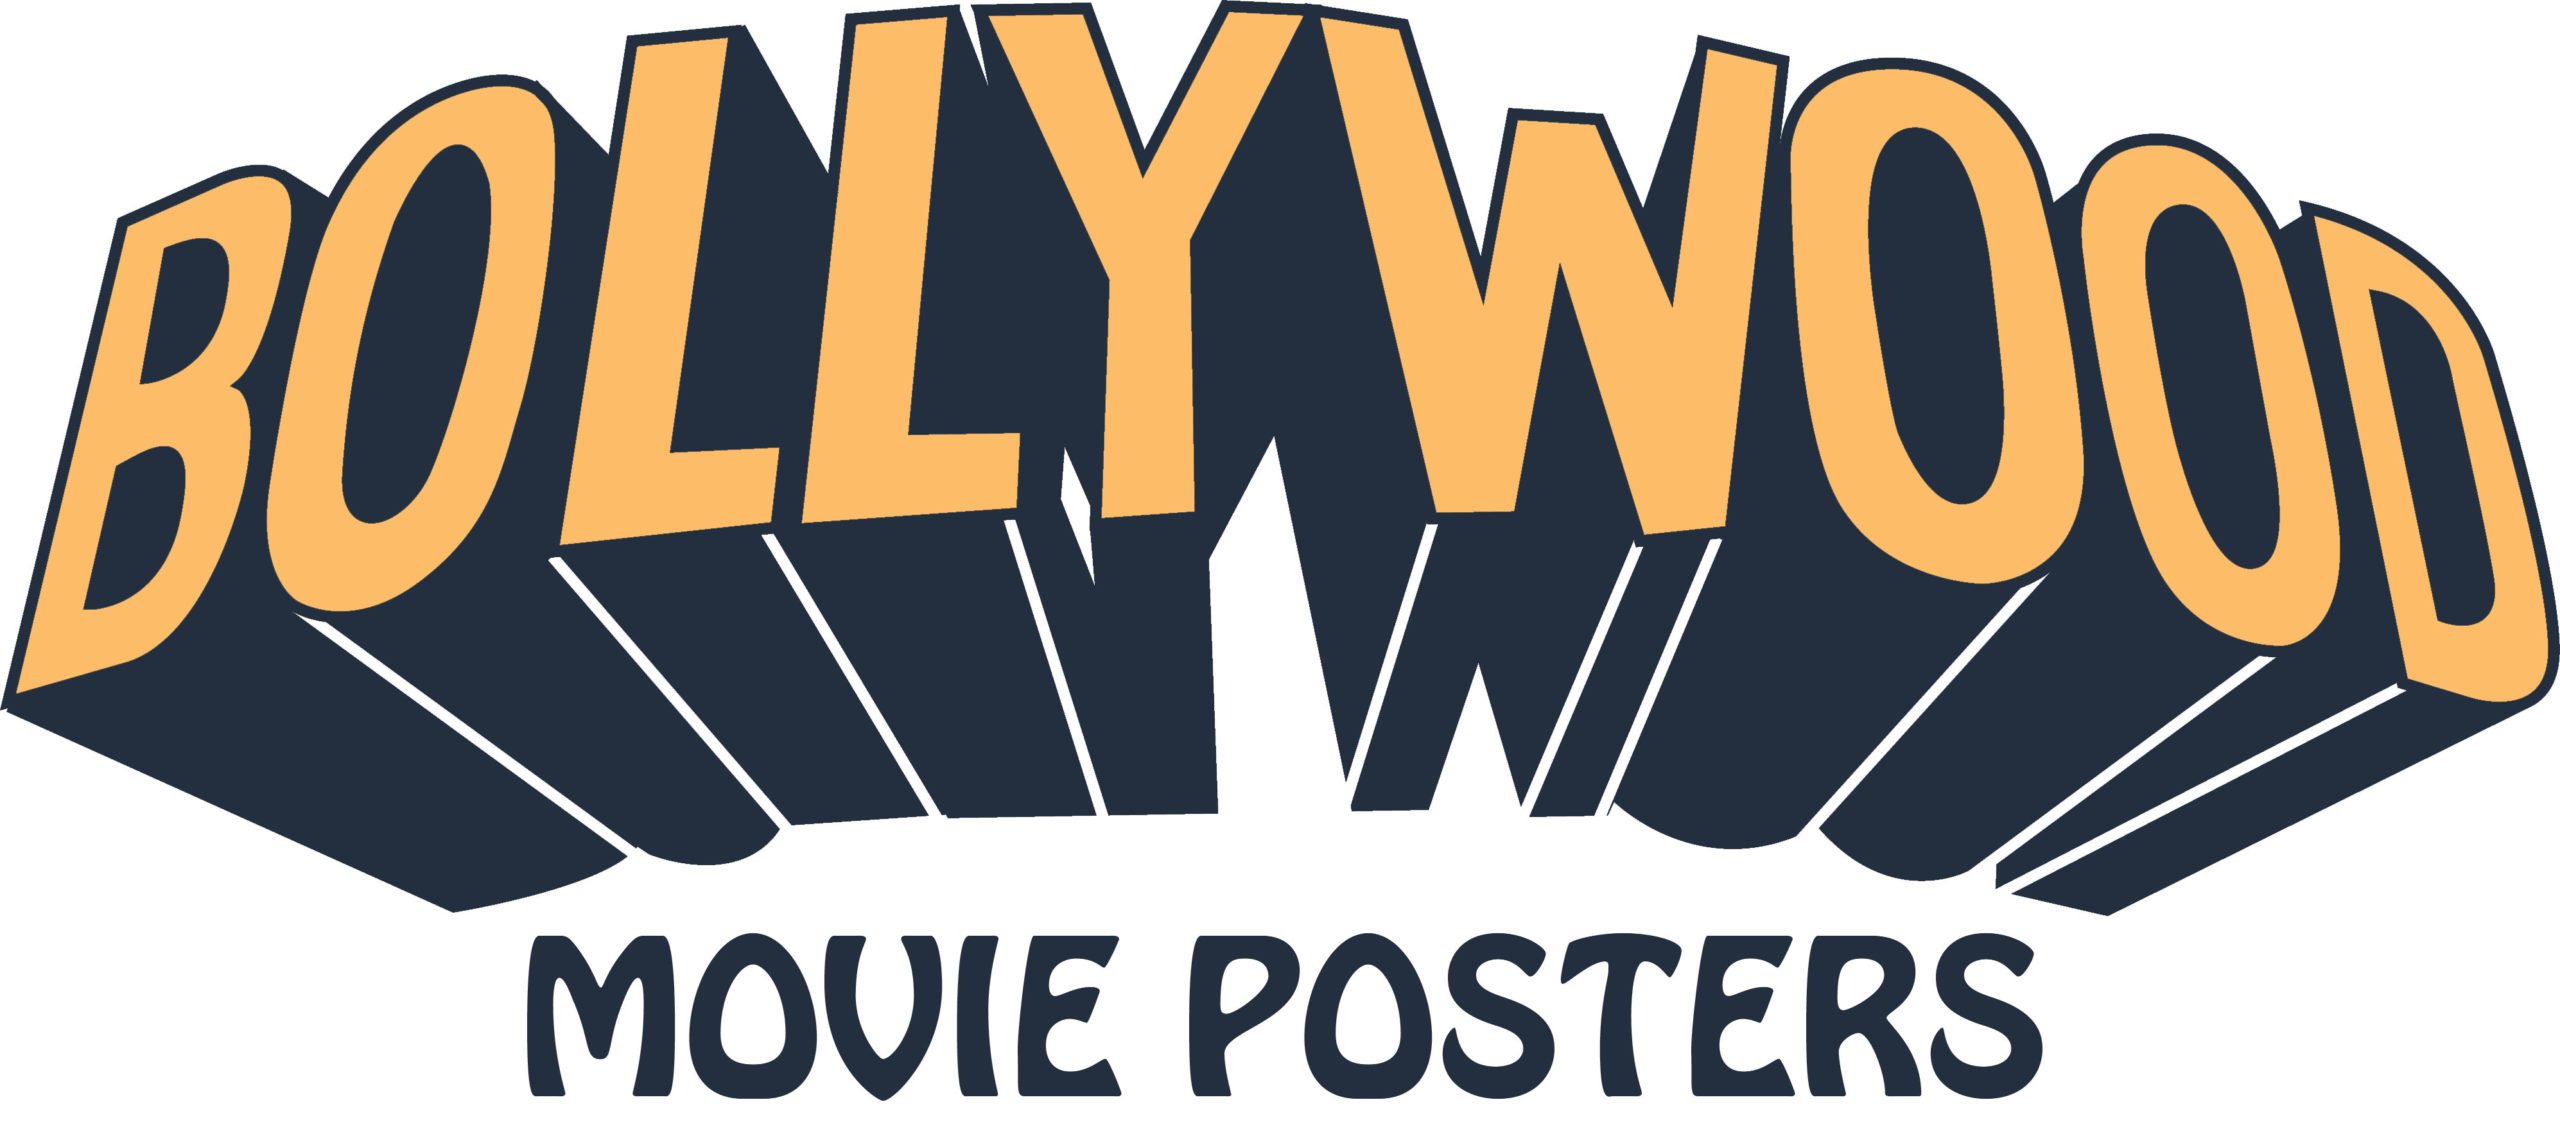 Bollywood Movie Posters Logo